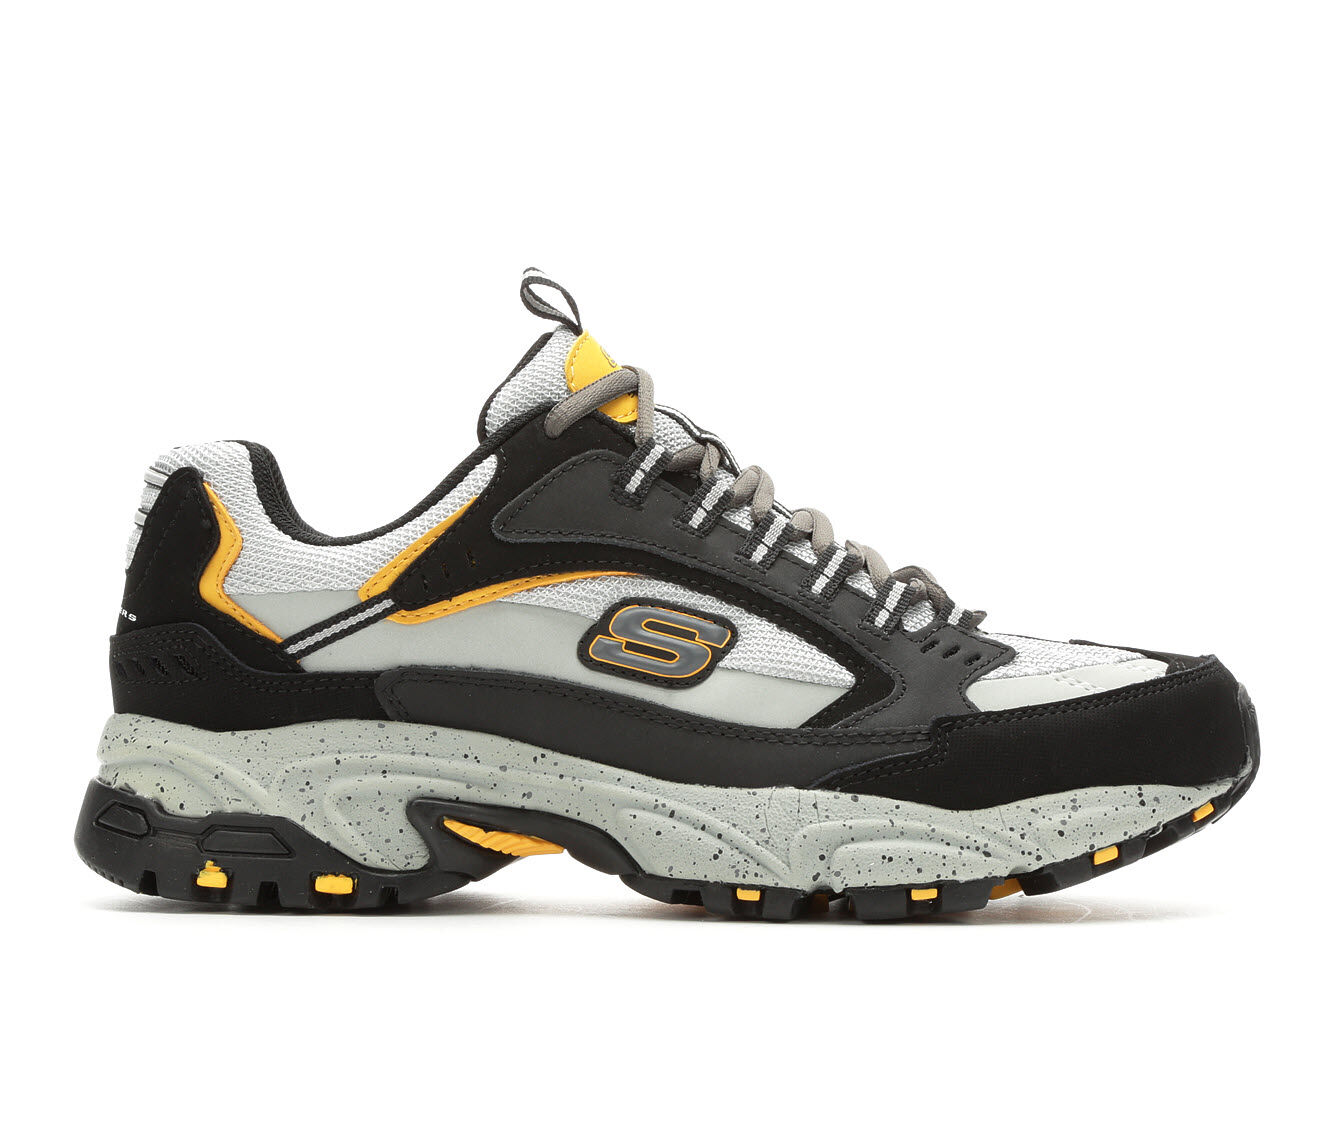 New Release Men's Skechers Cutback 51286 Training Shoes Blk/Gry/Yellow